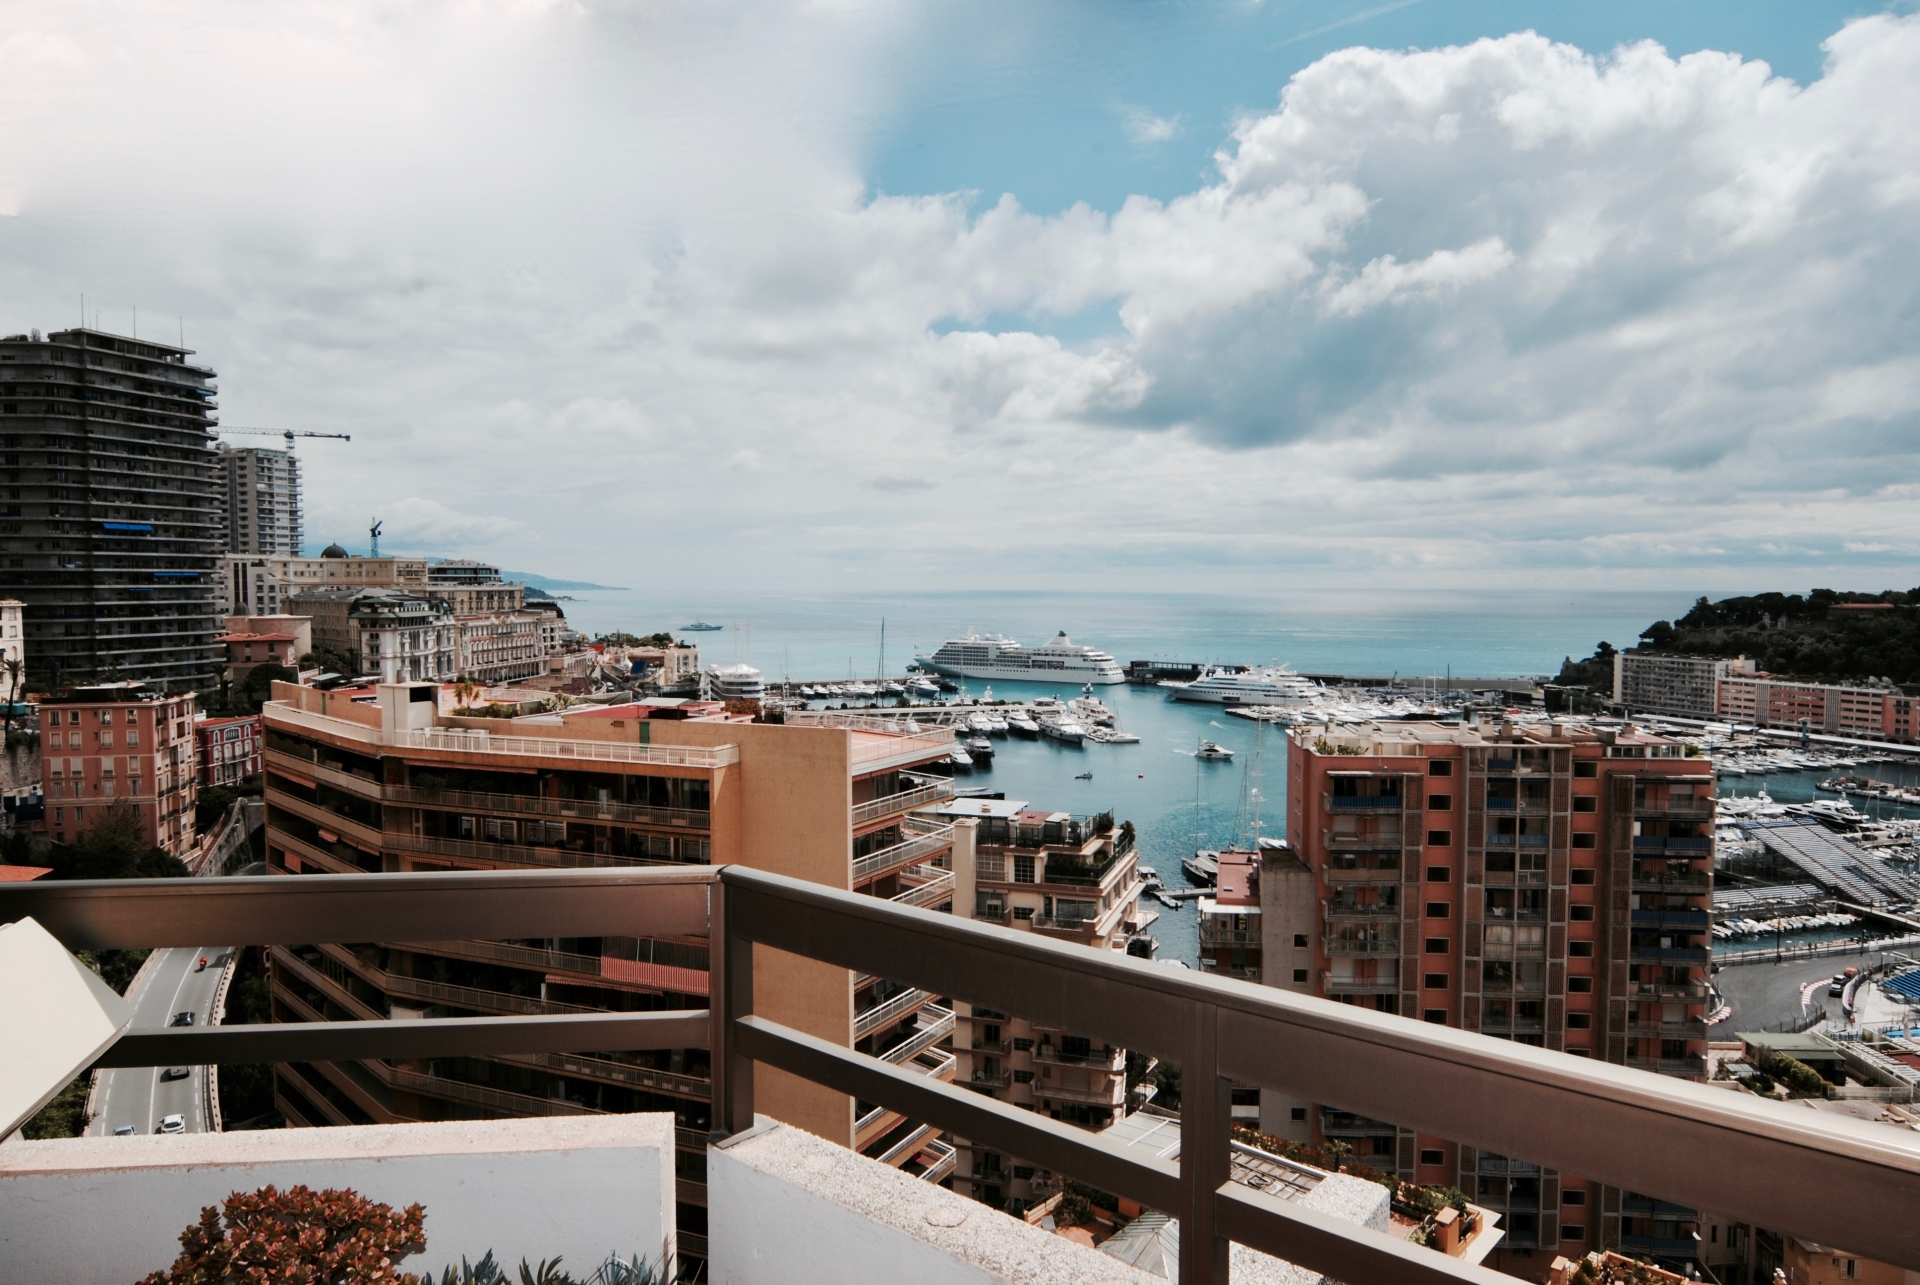 Terrasse Du Port Monaco Monaco Life Montecarlo Latest News Hotels Travel Offers Formula 1